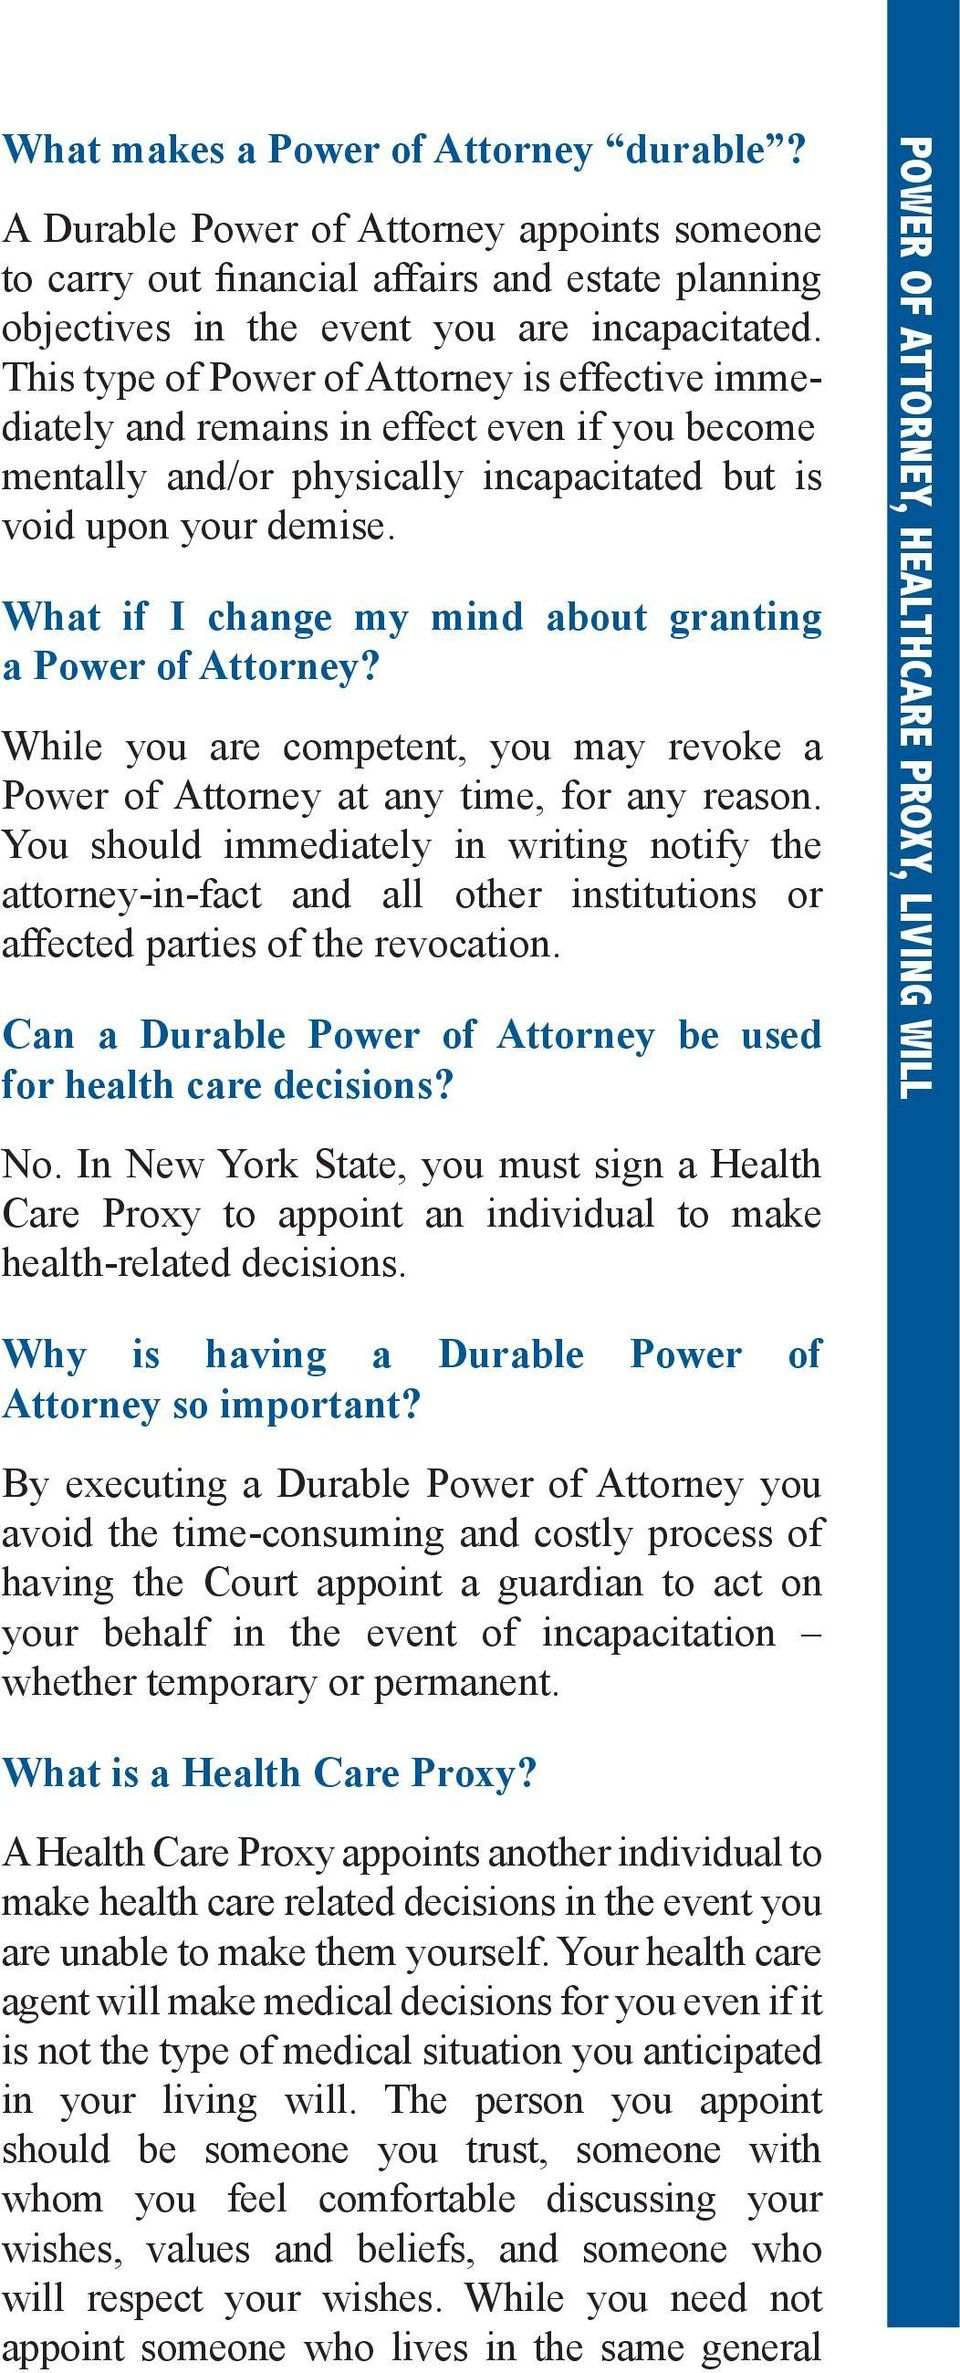 What if I change my mind about granting a Power of Attorney? While you are competent, you may revoke a Power of Attorney at any time, for any reason.